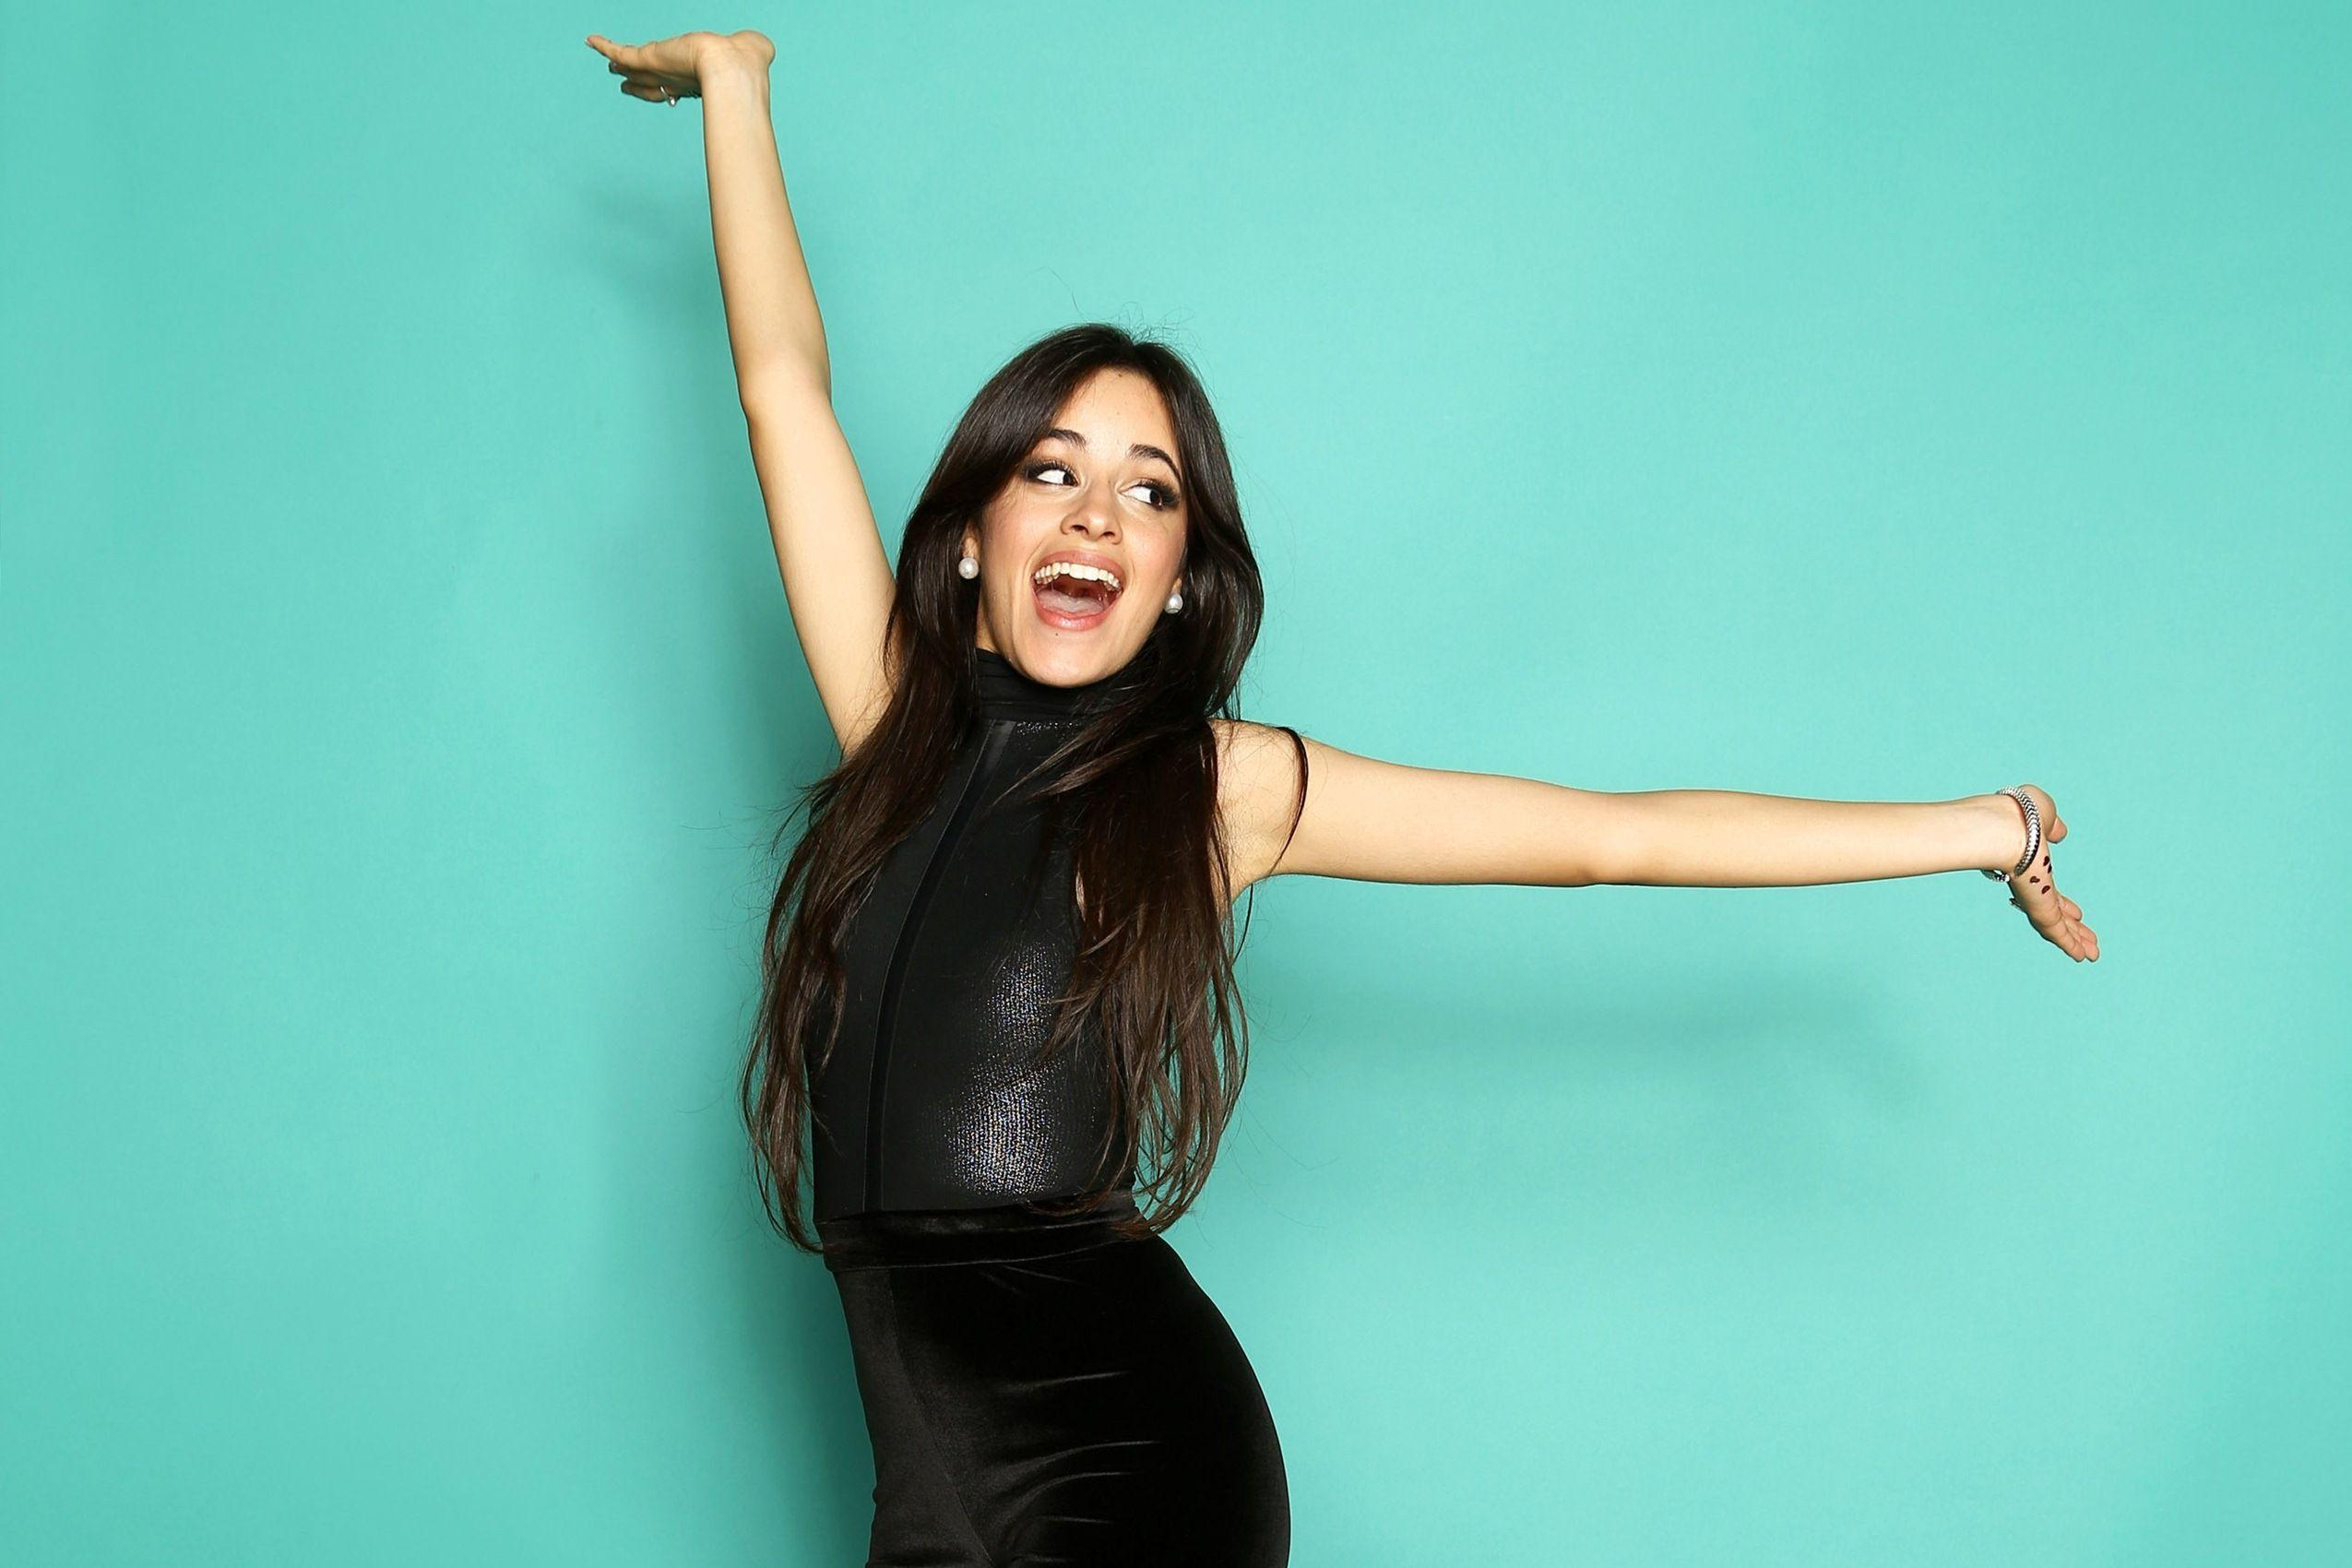 Camila Cabello HQ Desktop Wallpaper 14978 - Baltana